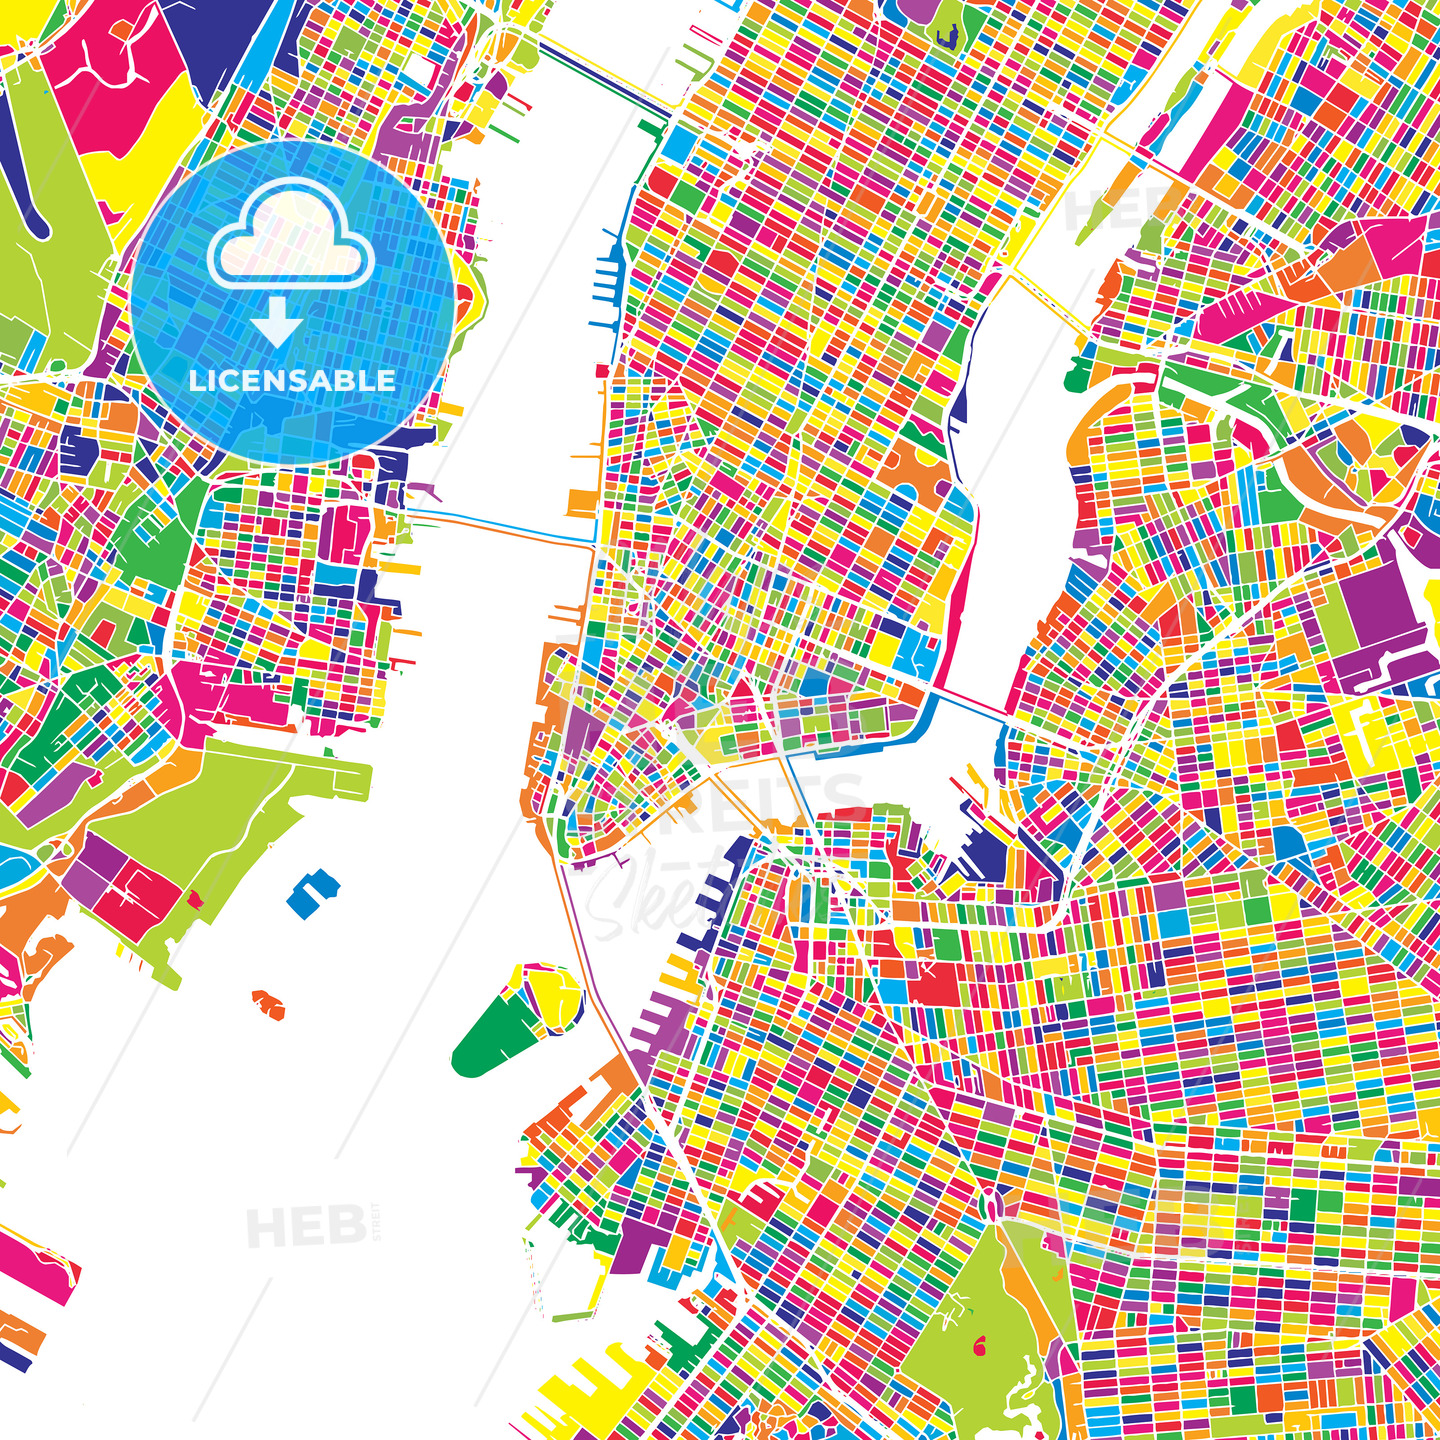 New York City On A Map Of The Us.New York City United States Colorful Vector Map